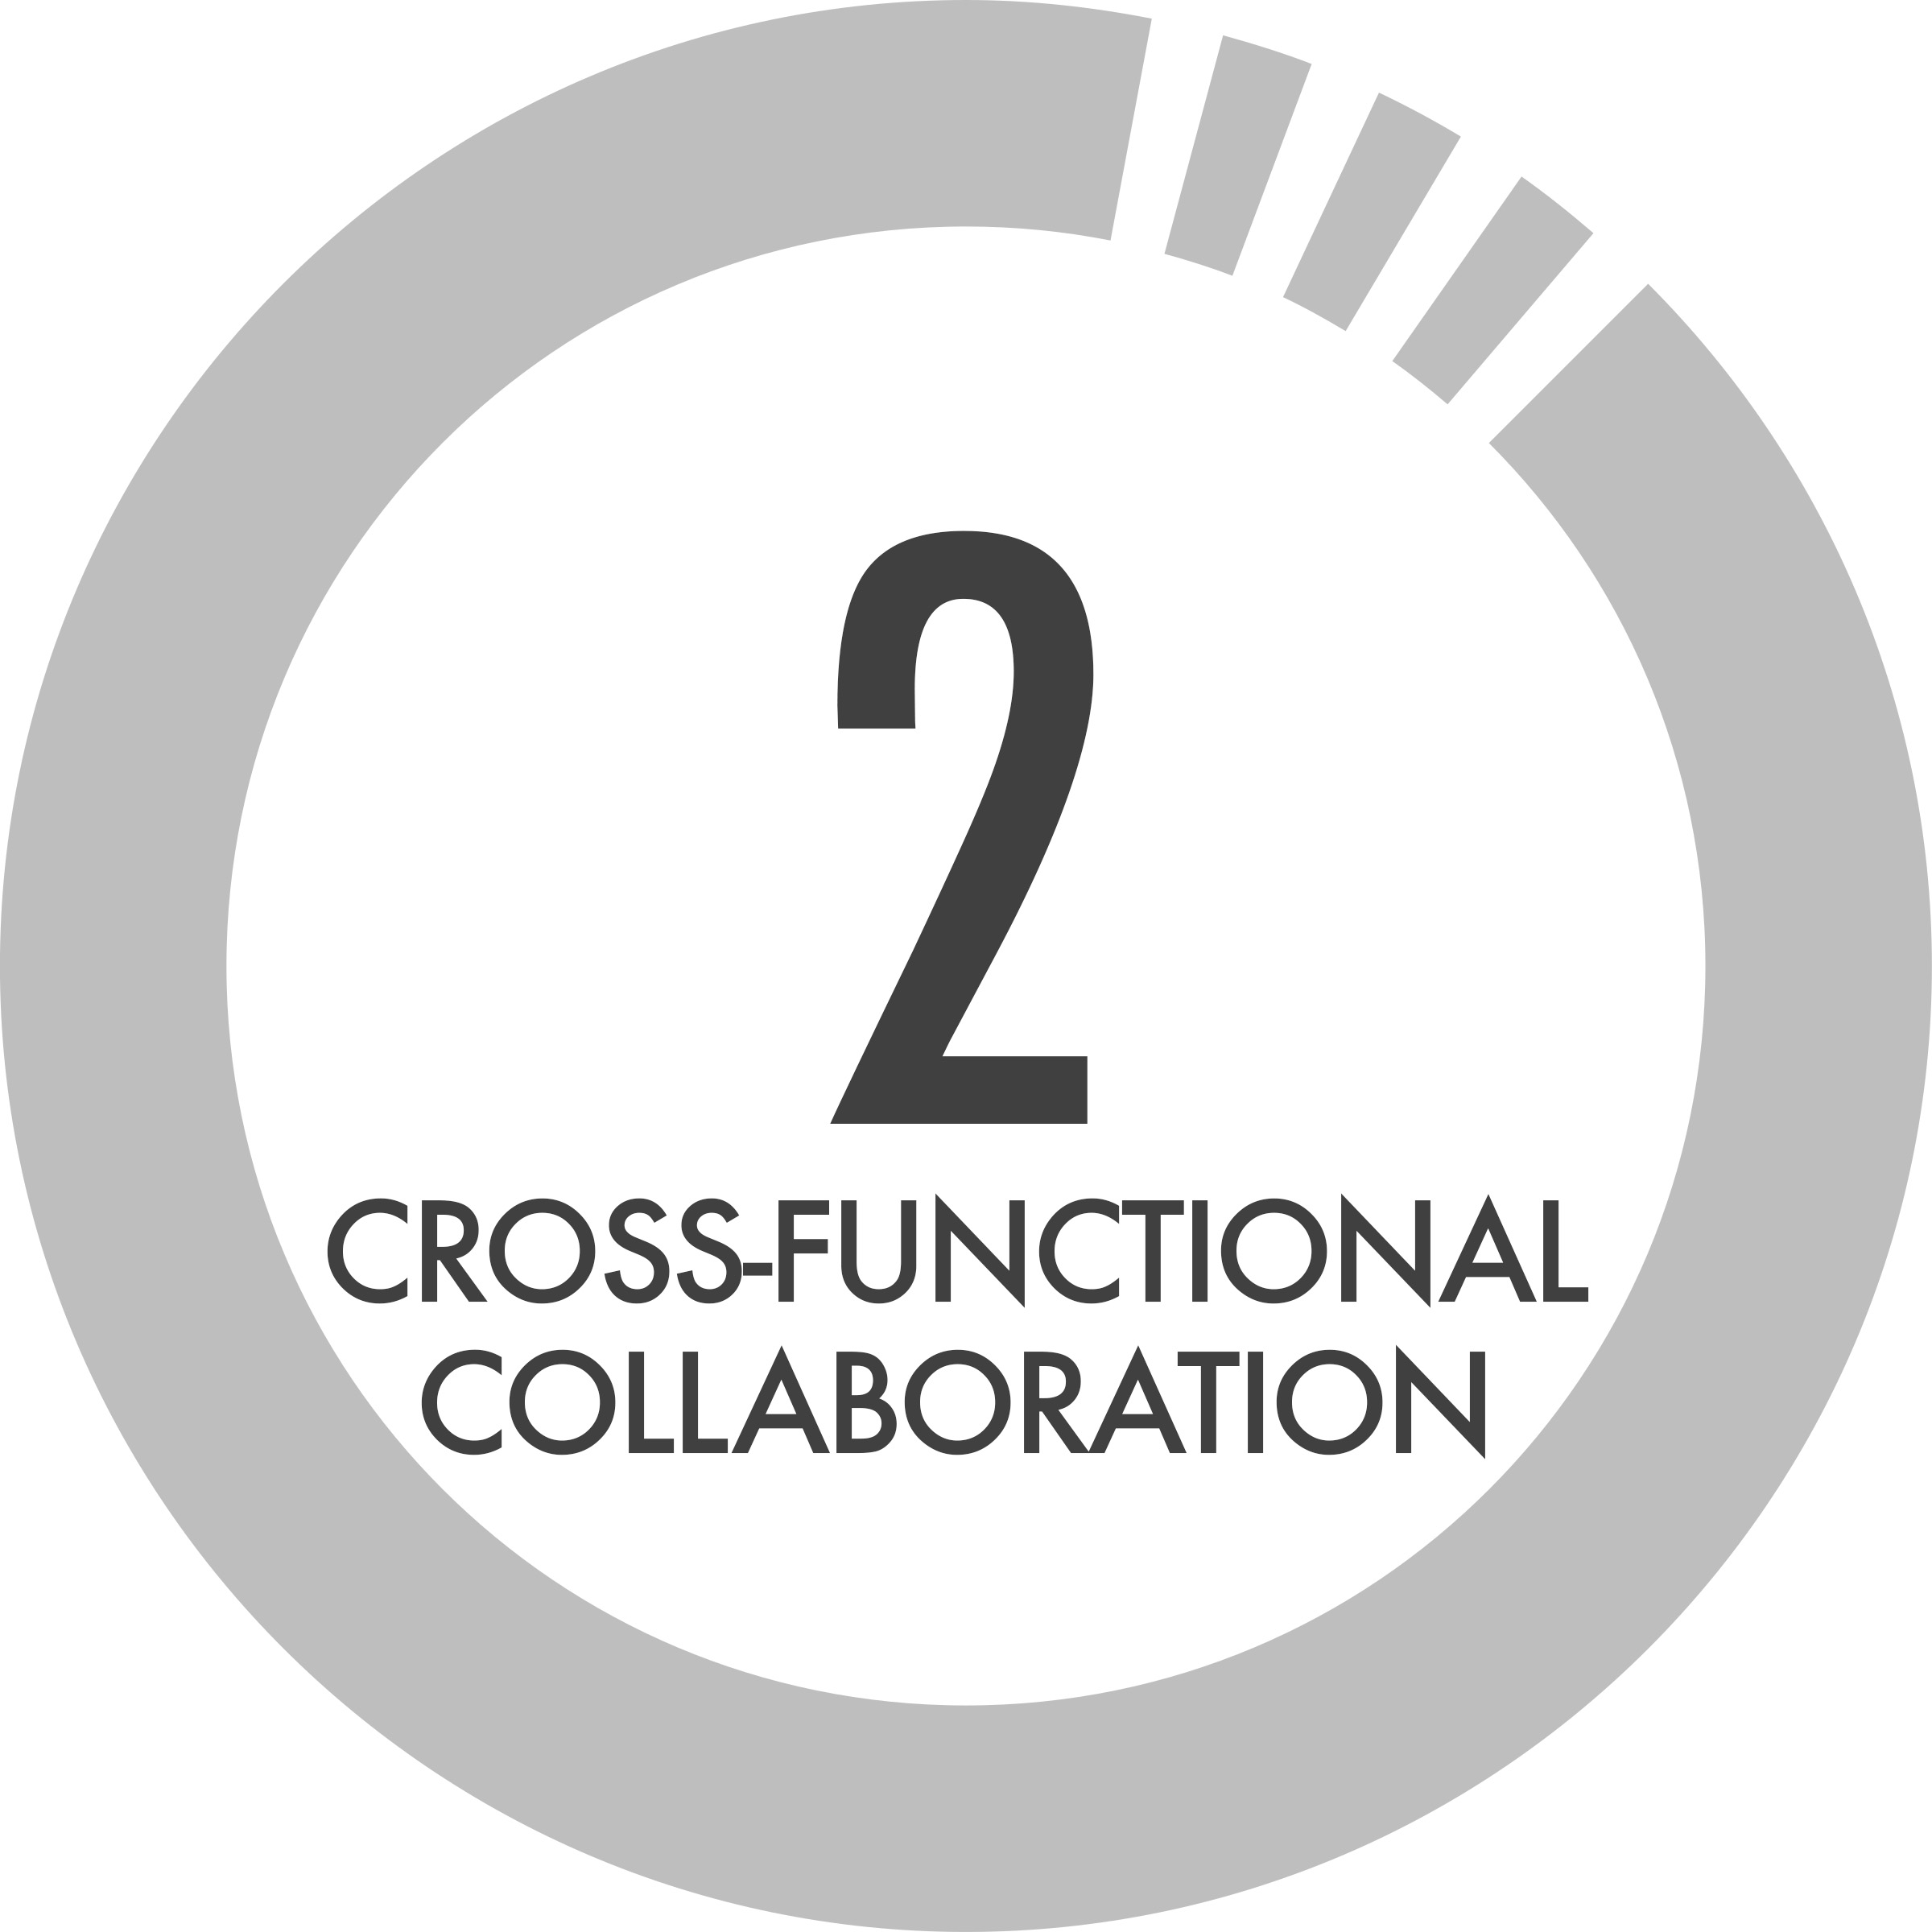 Cross-Functional Collaboration - Circle 2.jpg